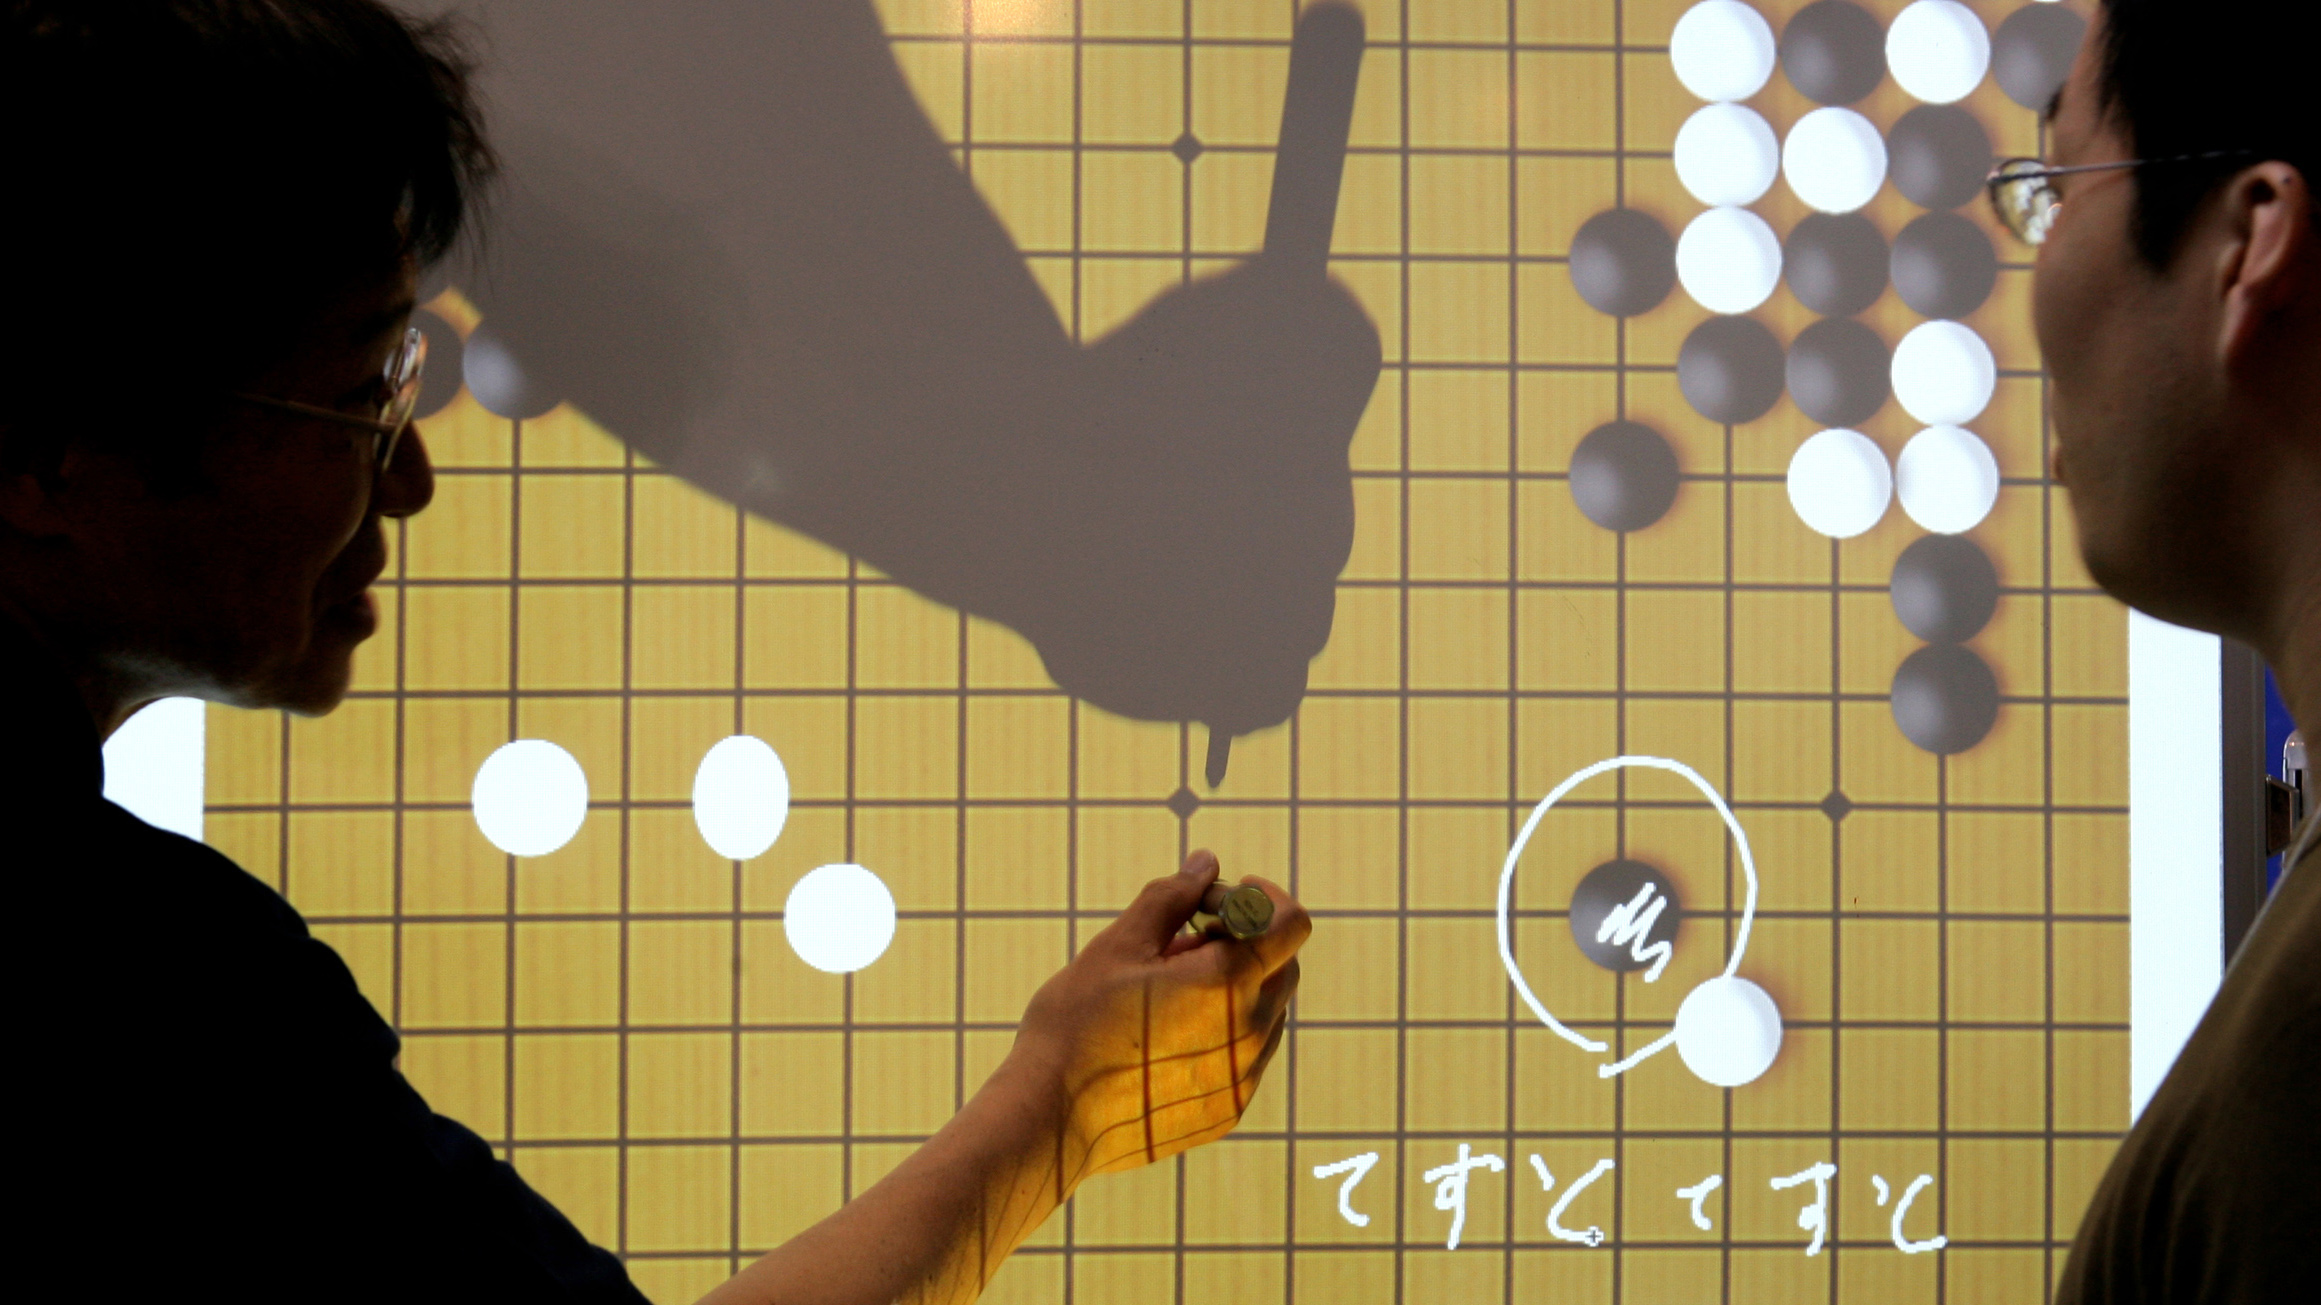 Google's AI just cracked the game that supposedly no computer could beat